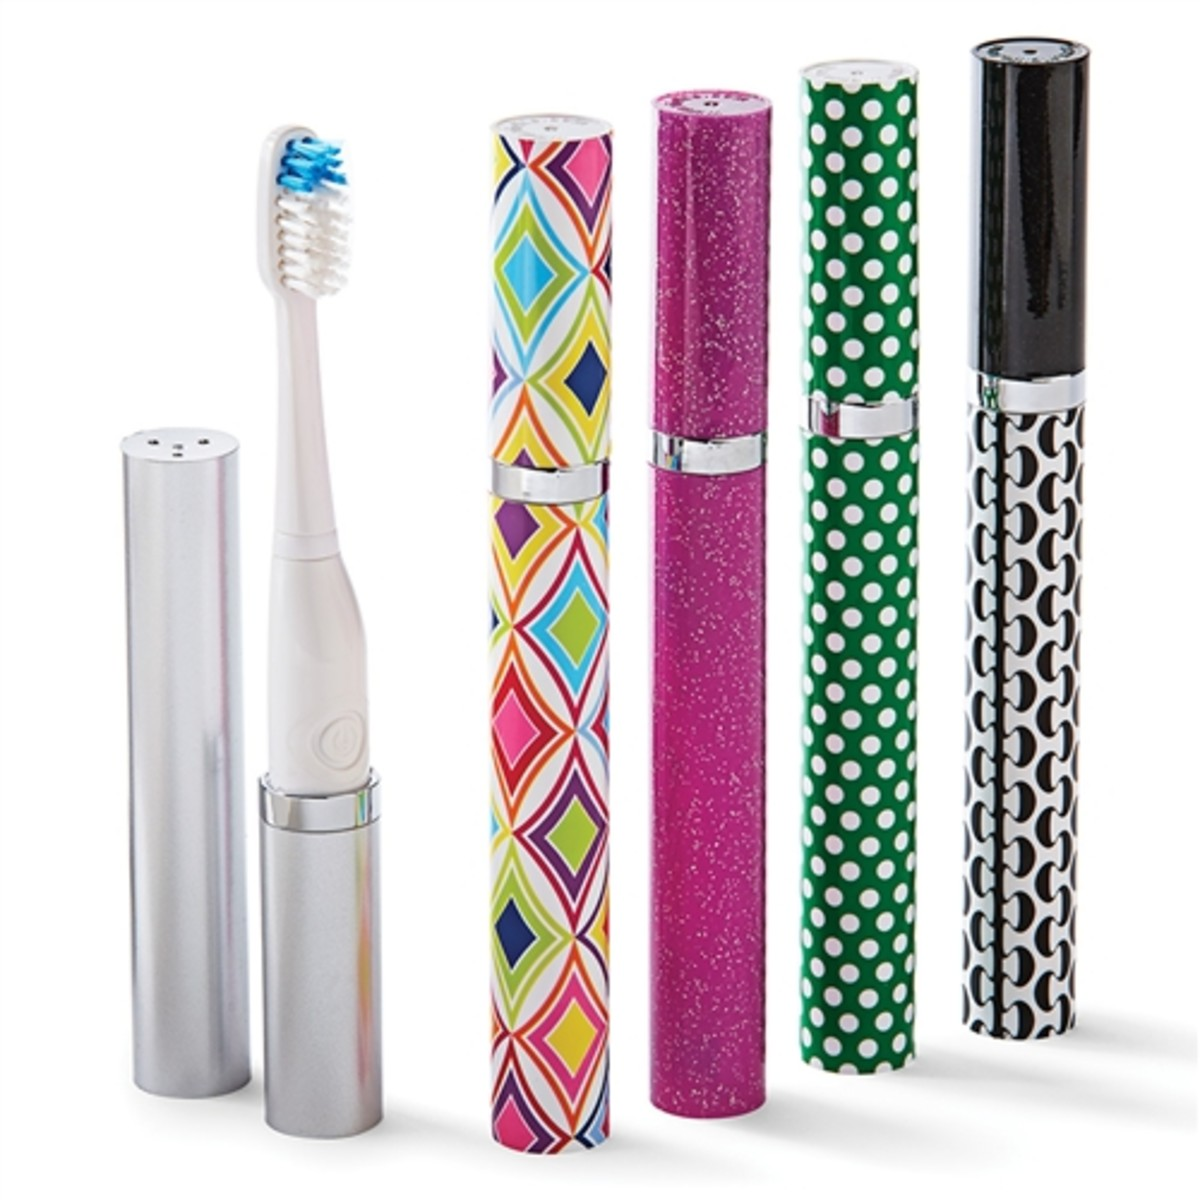 Bye-bye, boring toothbrushes! Hello, brightly-colored sonic brushes!